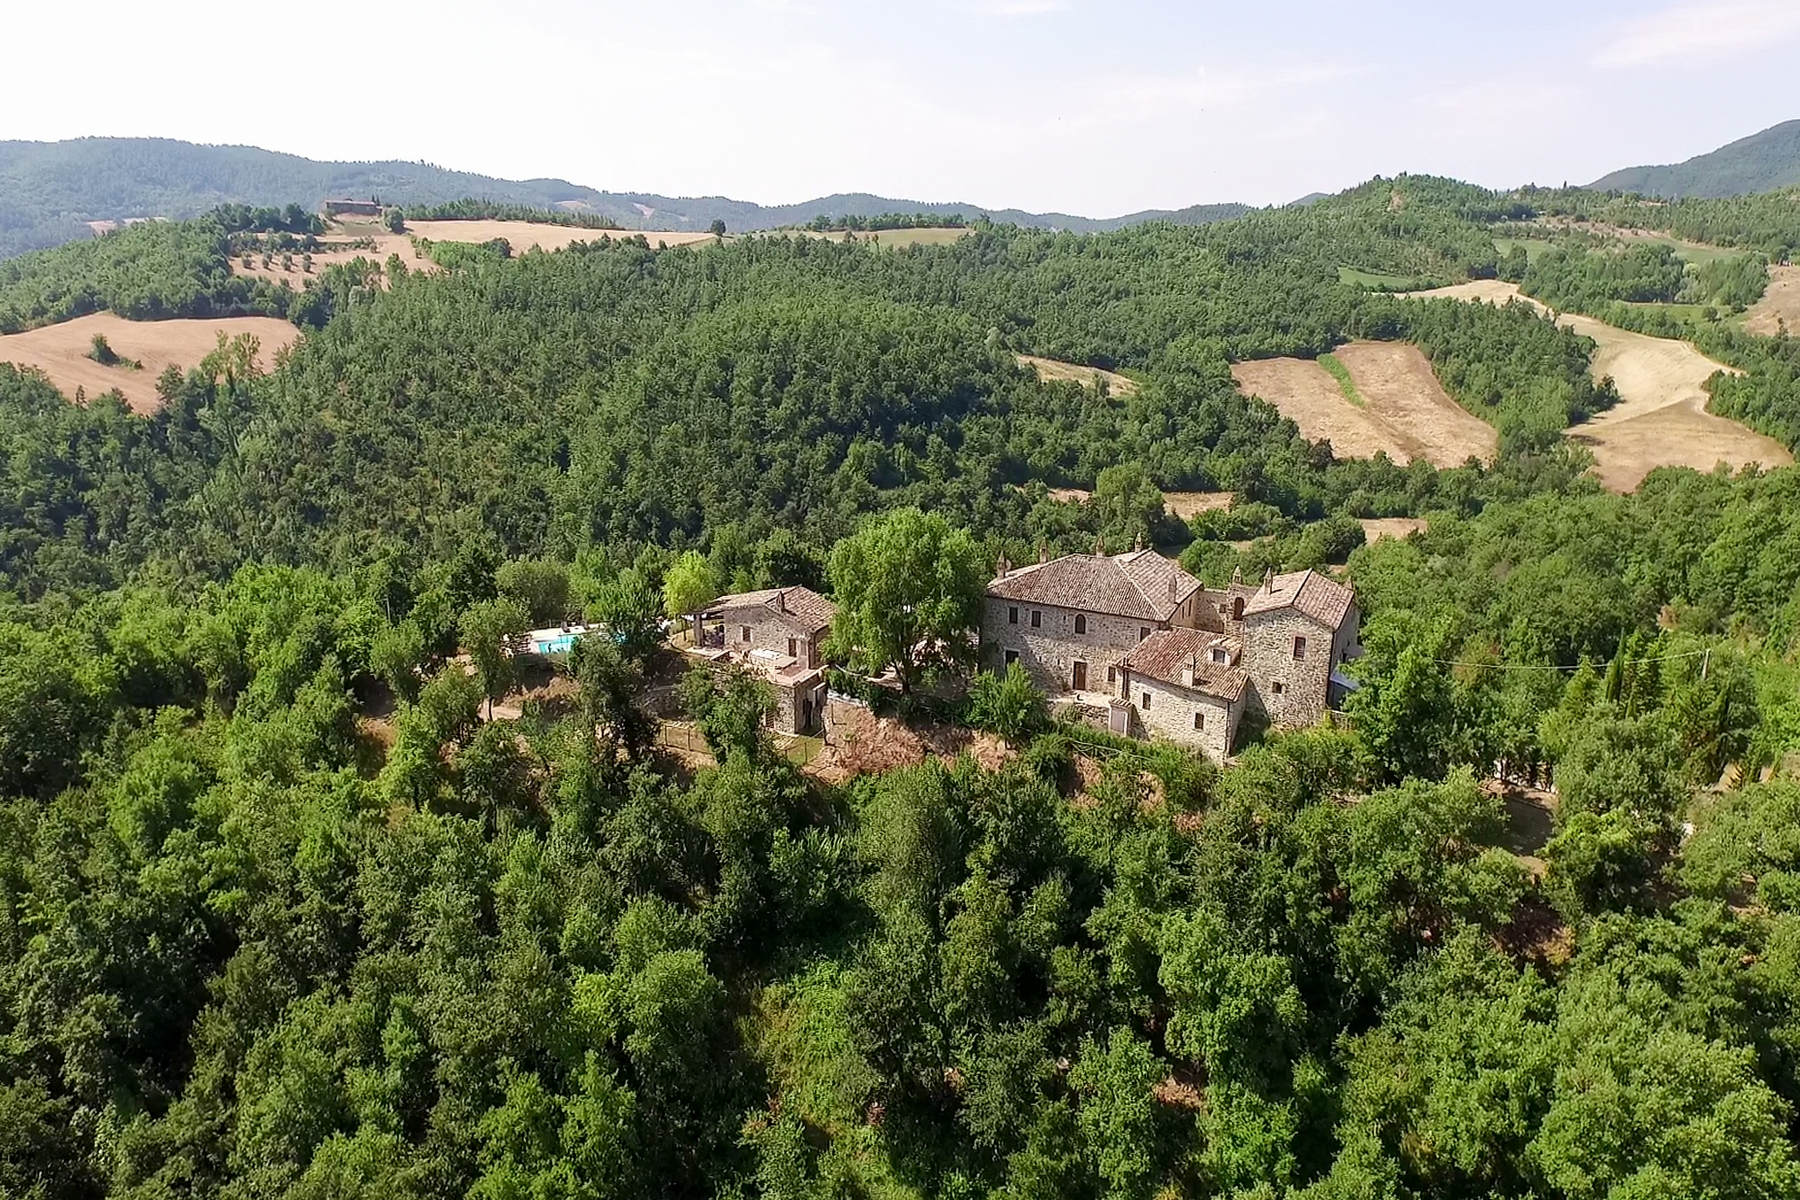 Single Family Home for Sale at Ancient monastery close to Perugia Umbertide Perugia, Perugia 06019 Italy